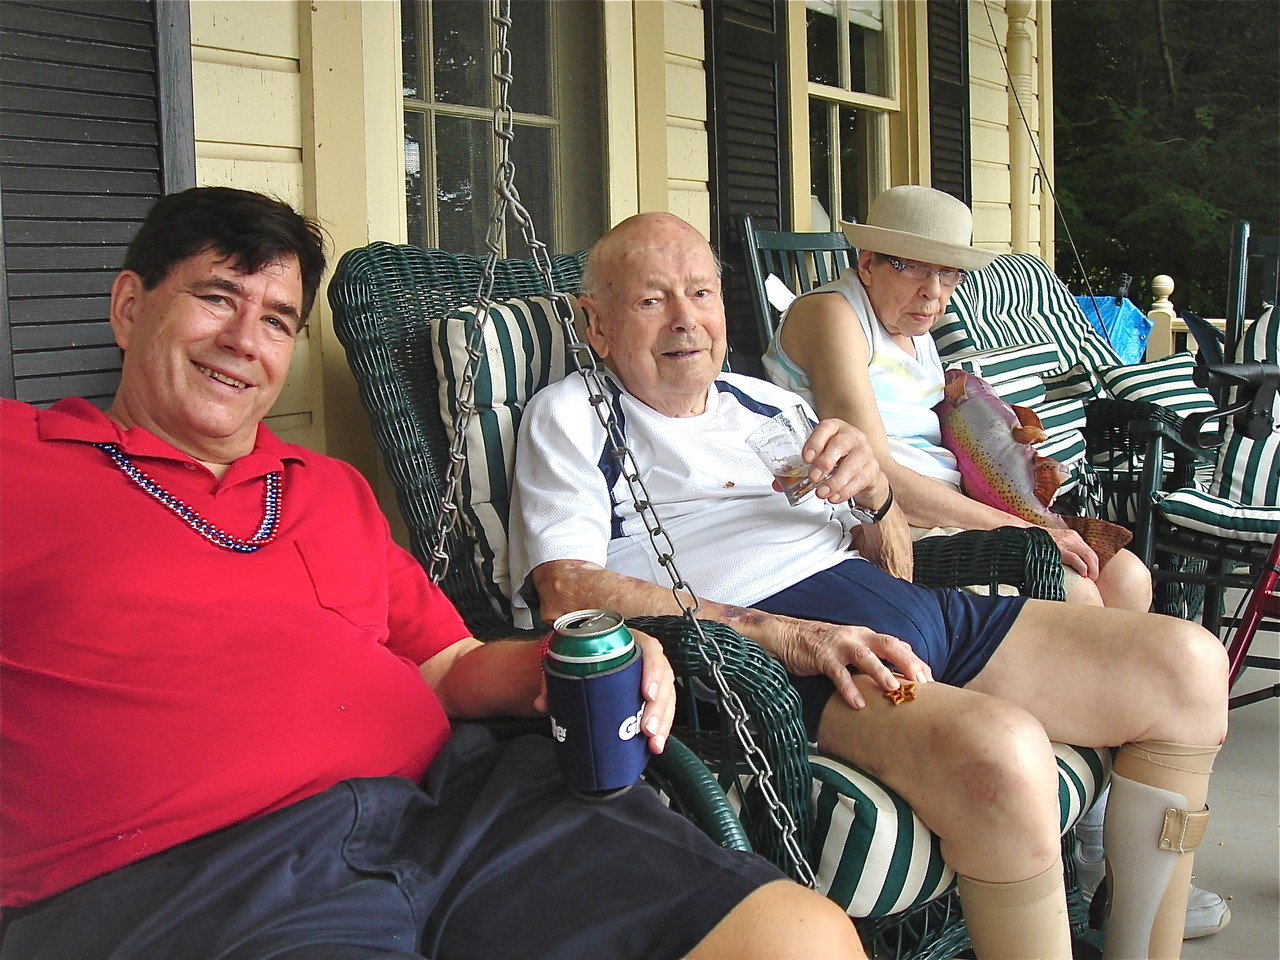 John, Al & El, July 4th, 2013